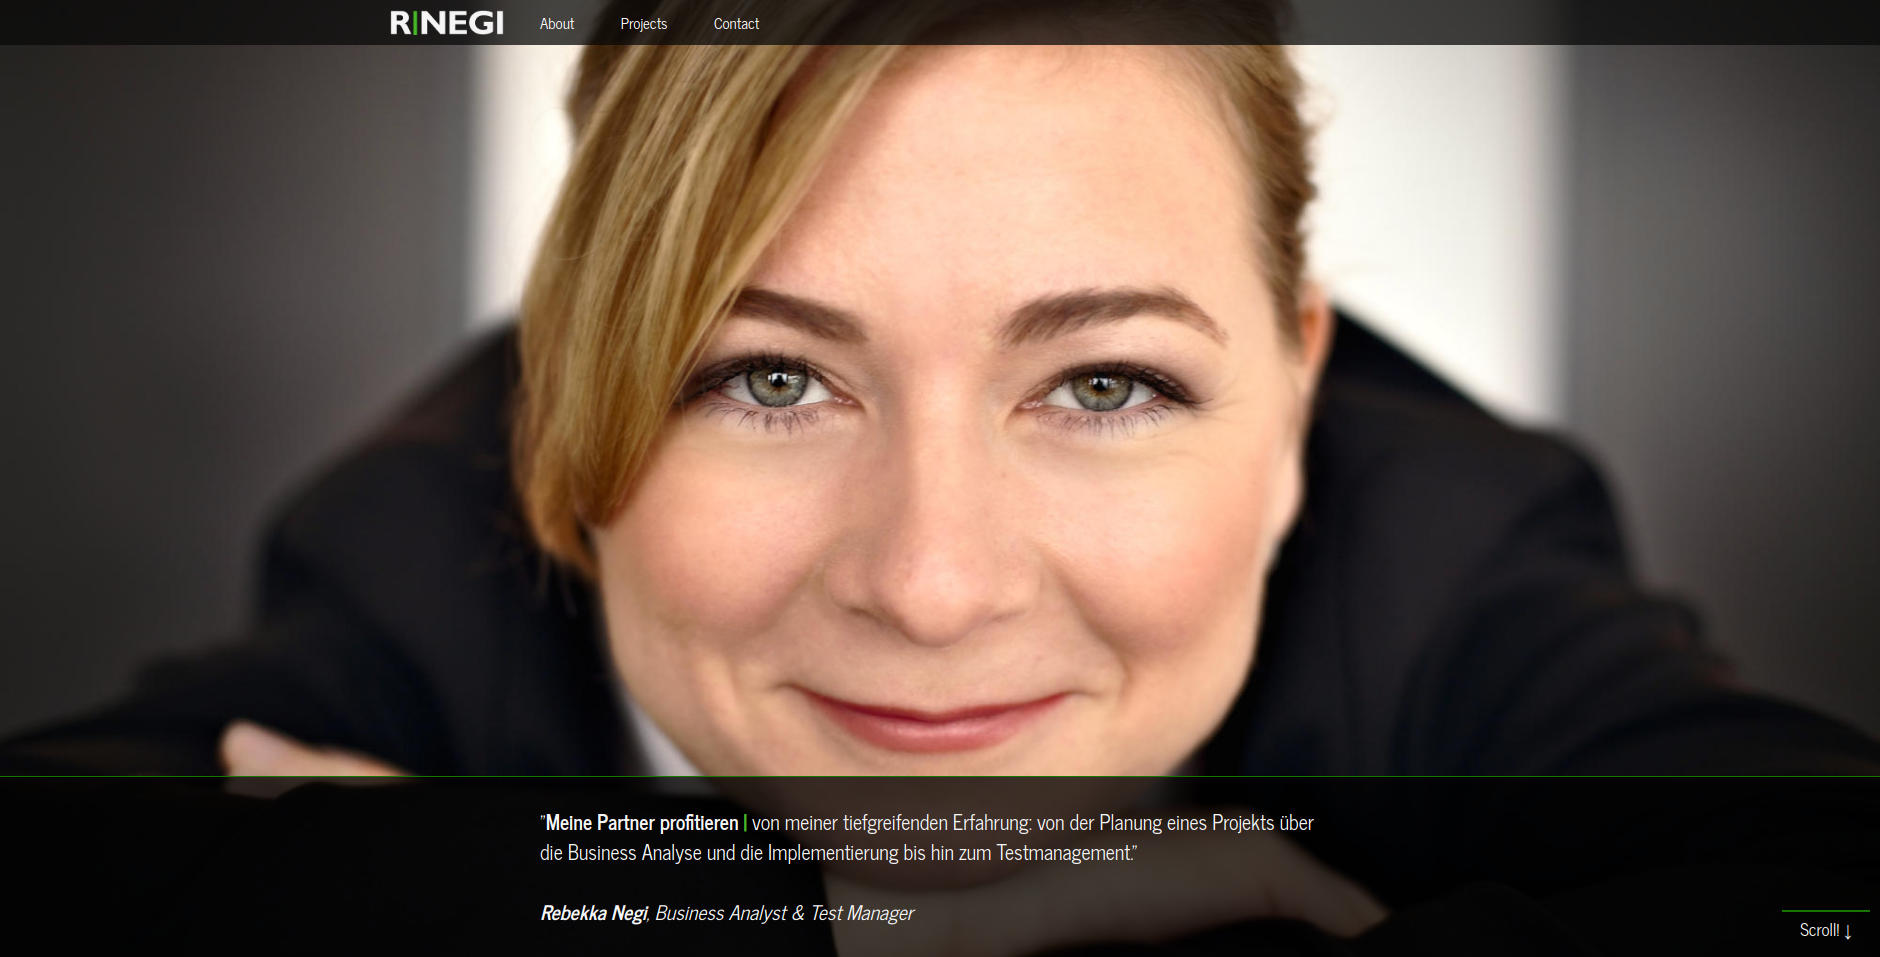 Website Showcase: Rebekka Negi » Web Design · Communication · Storytelling » Brand Artery